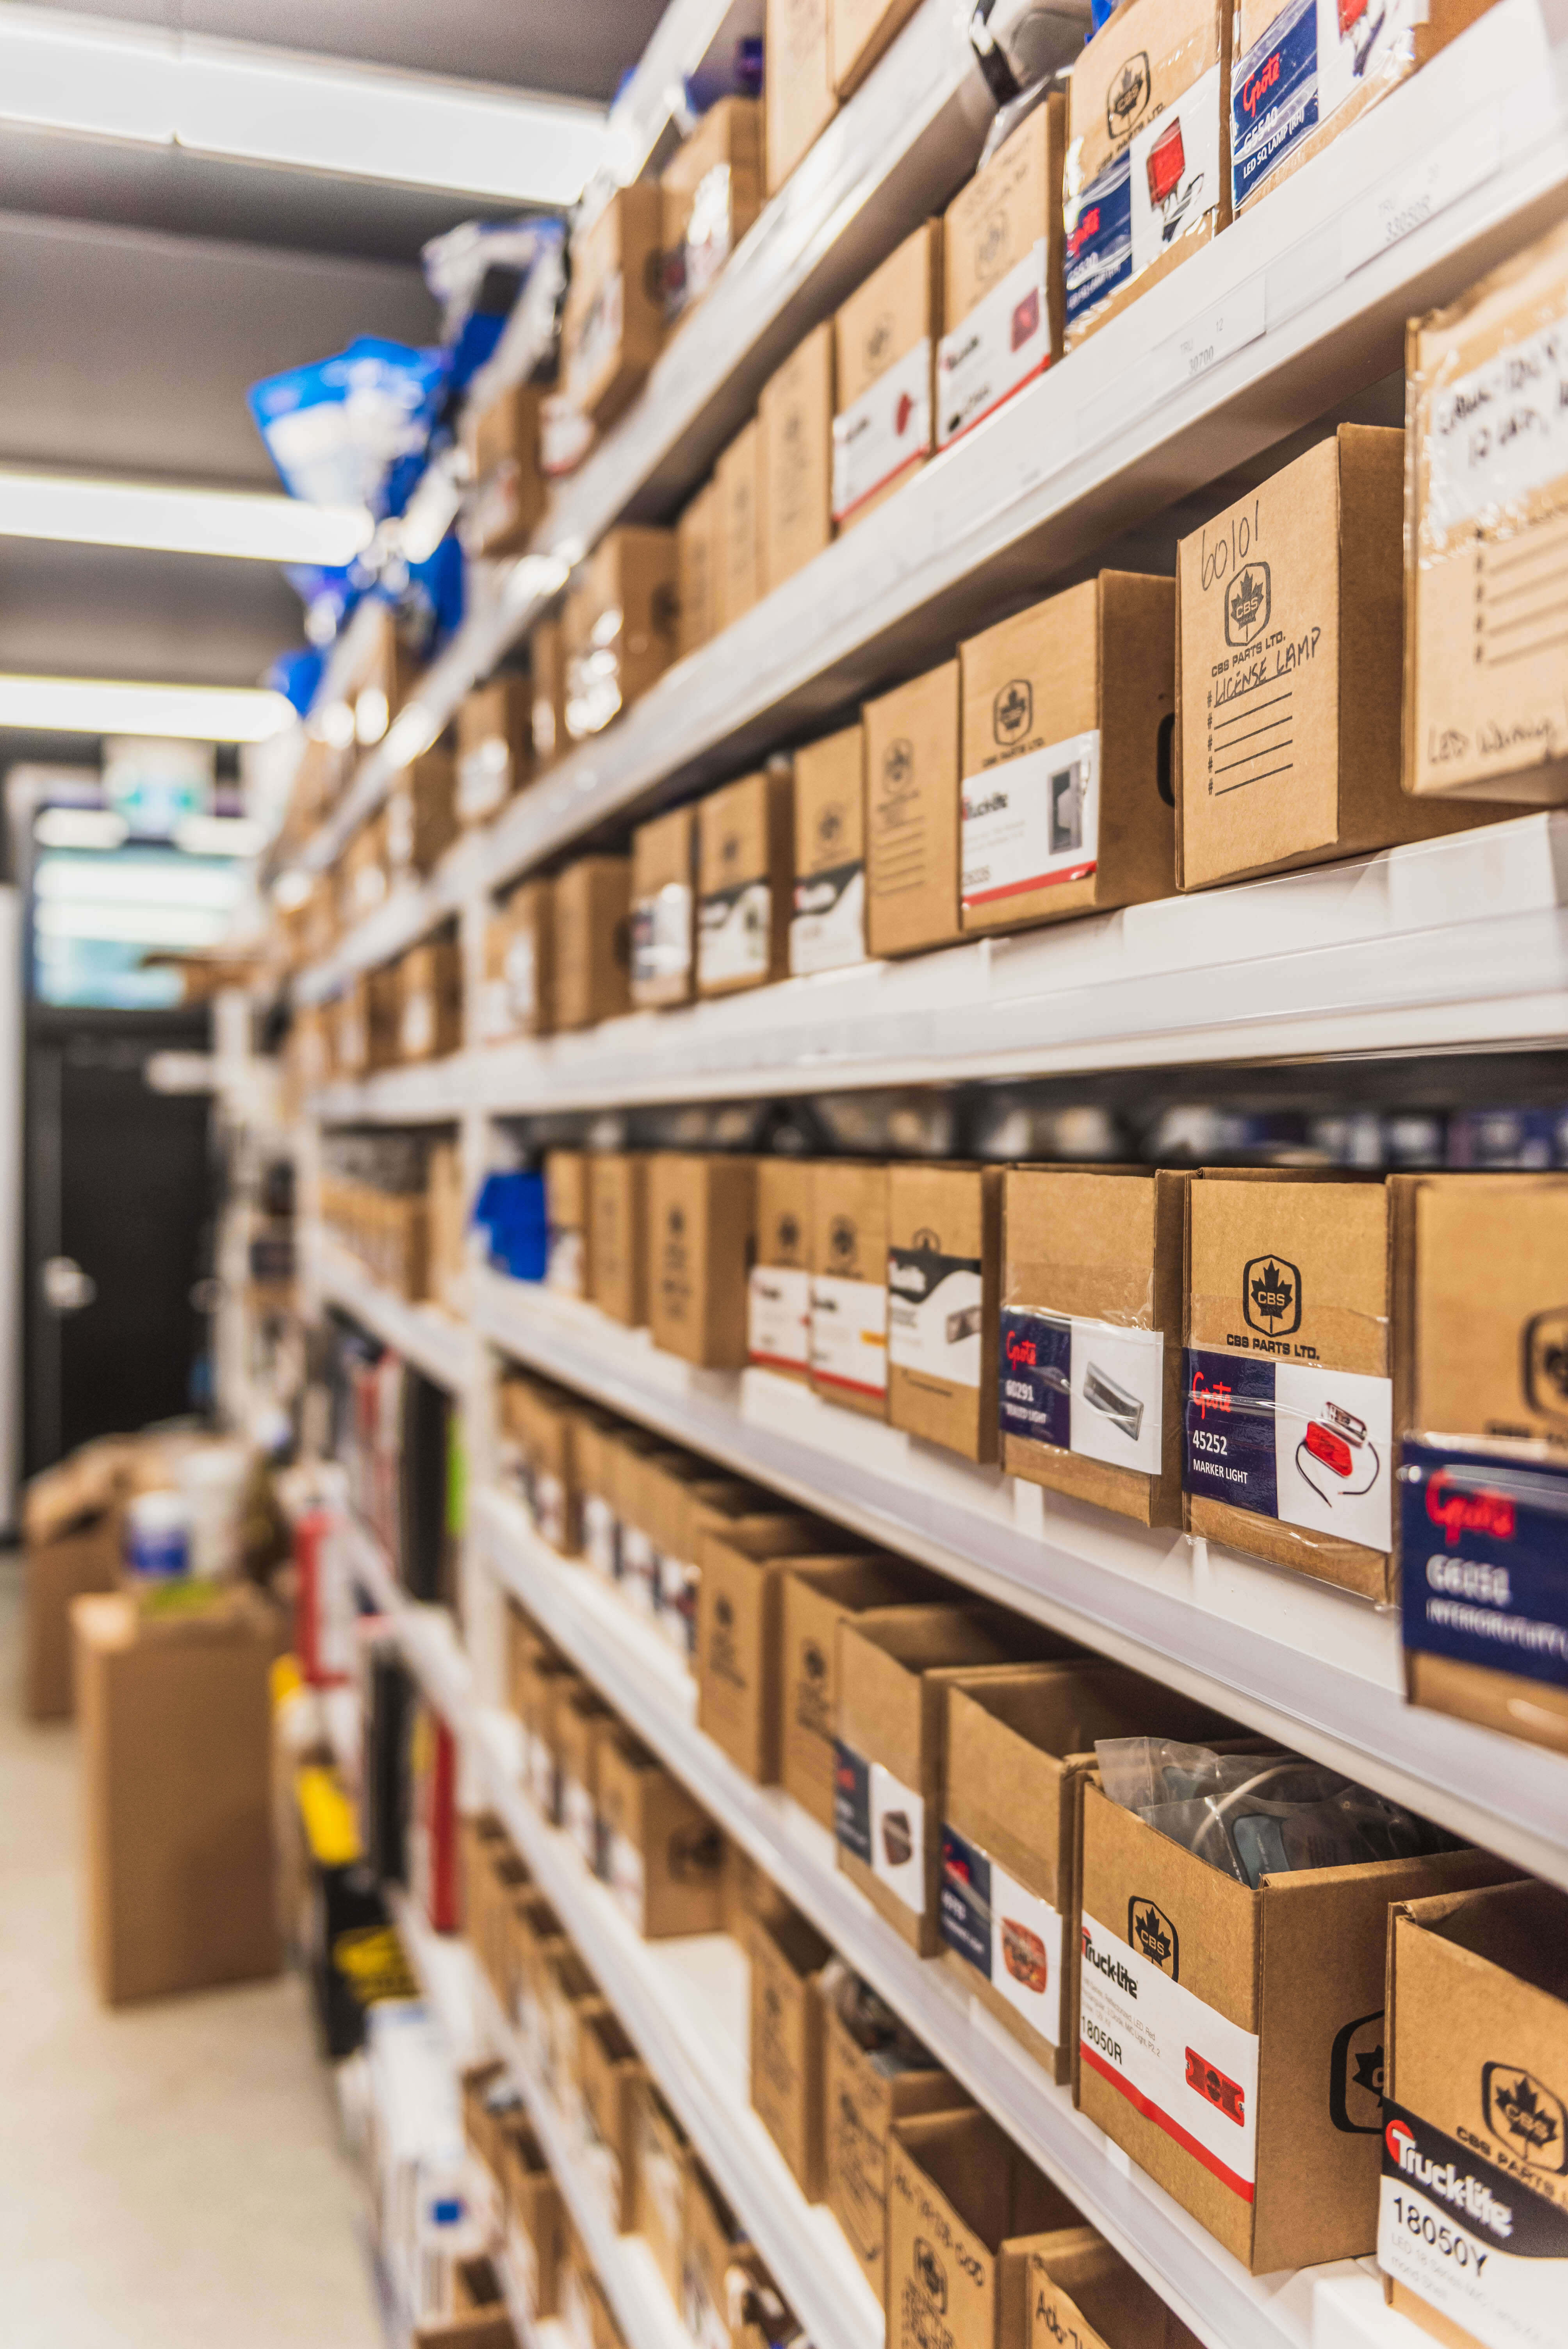 MPP, Mountain Pacific Parts, Chilliwack BC, Truck Parts, OEM and Aftermarket Truck Parts, Truck Repairs, truck mechanical repairs, commercial truck parts, Mike Chamberlin, Canada, MPM Group, Visit MPM Fraser Valley, Mountain Pacific Mechanical